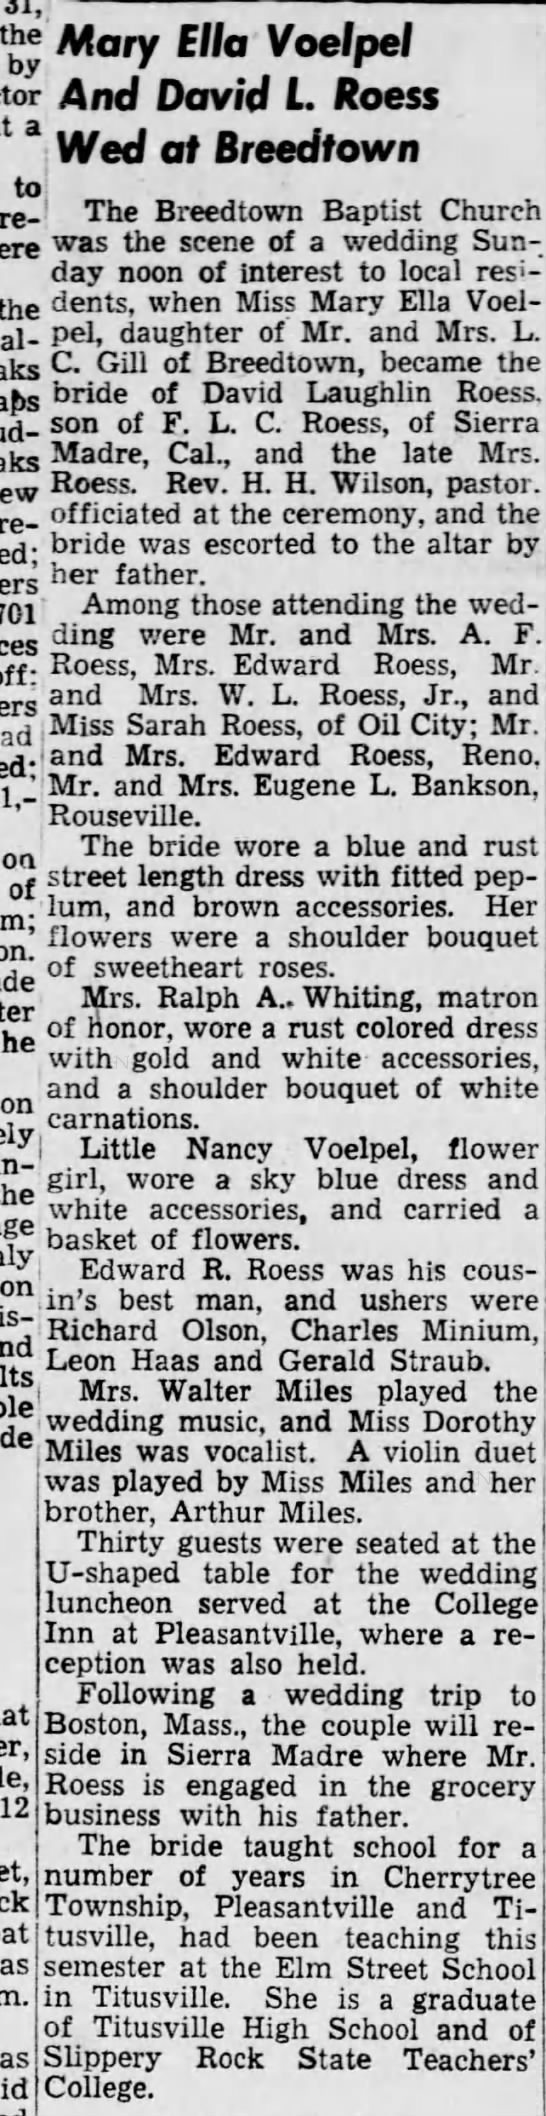 Roess-Voelpel Wed 23 Jan 1949, The News-Herald, Franklin, PA, pg 9 -